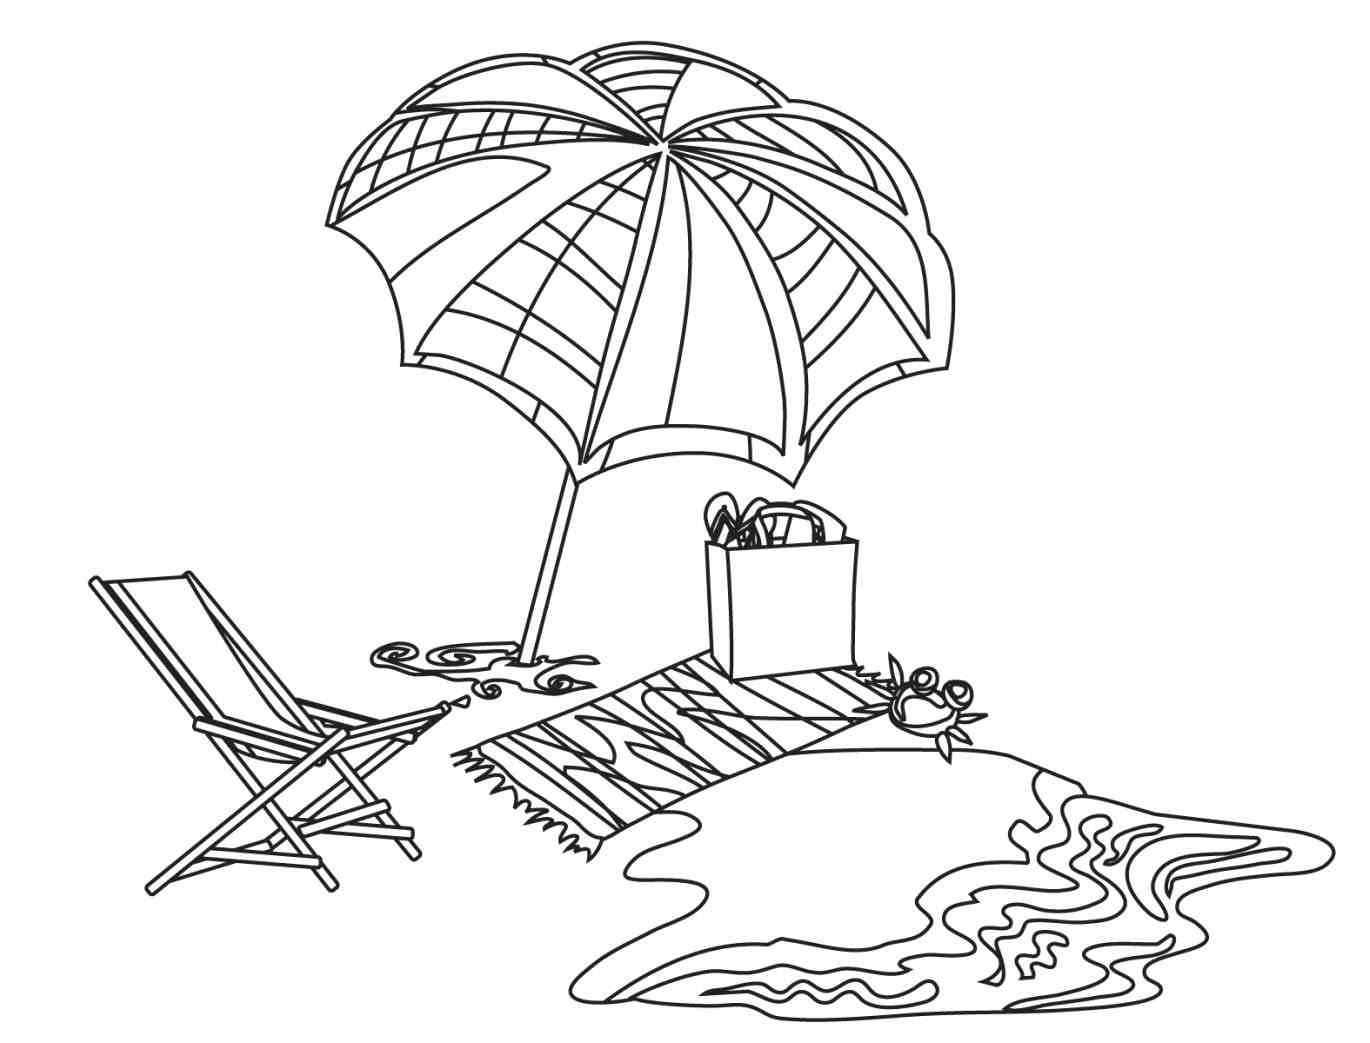 beach picture for coloring beach coloring pages 20 free printable sheets to color beach coloring picture for